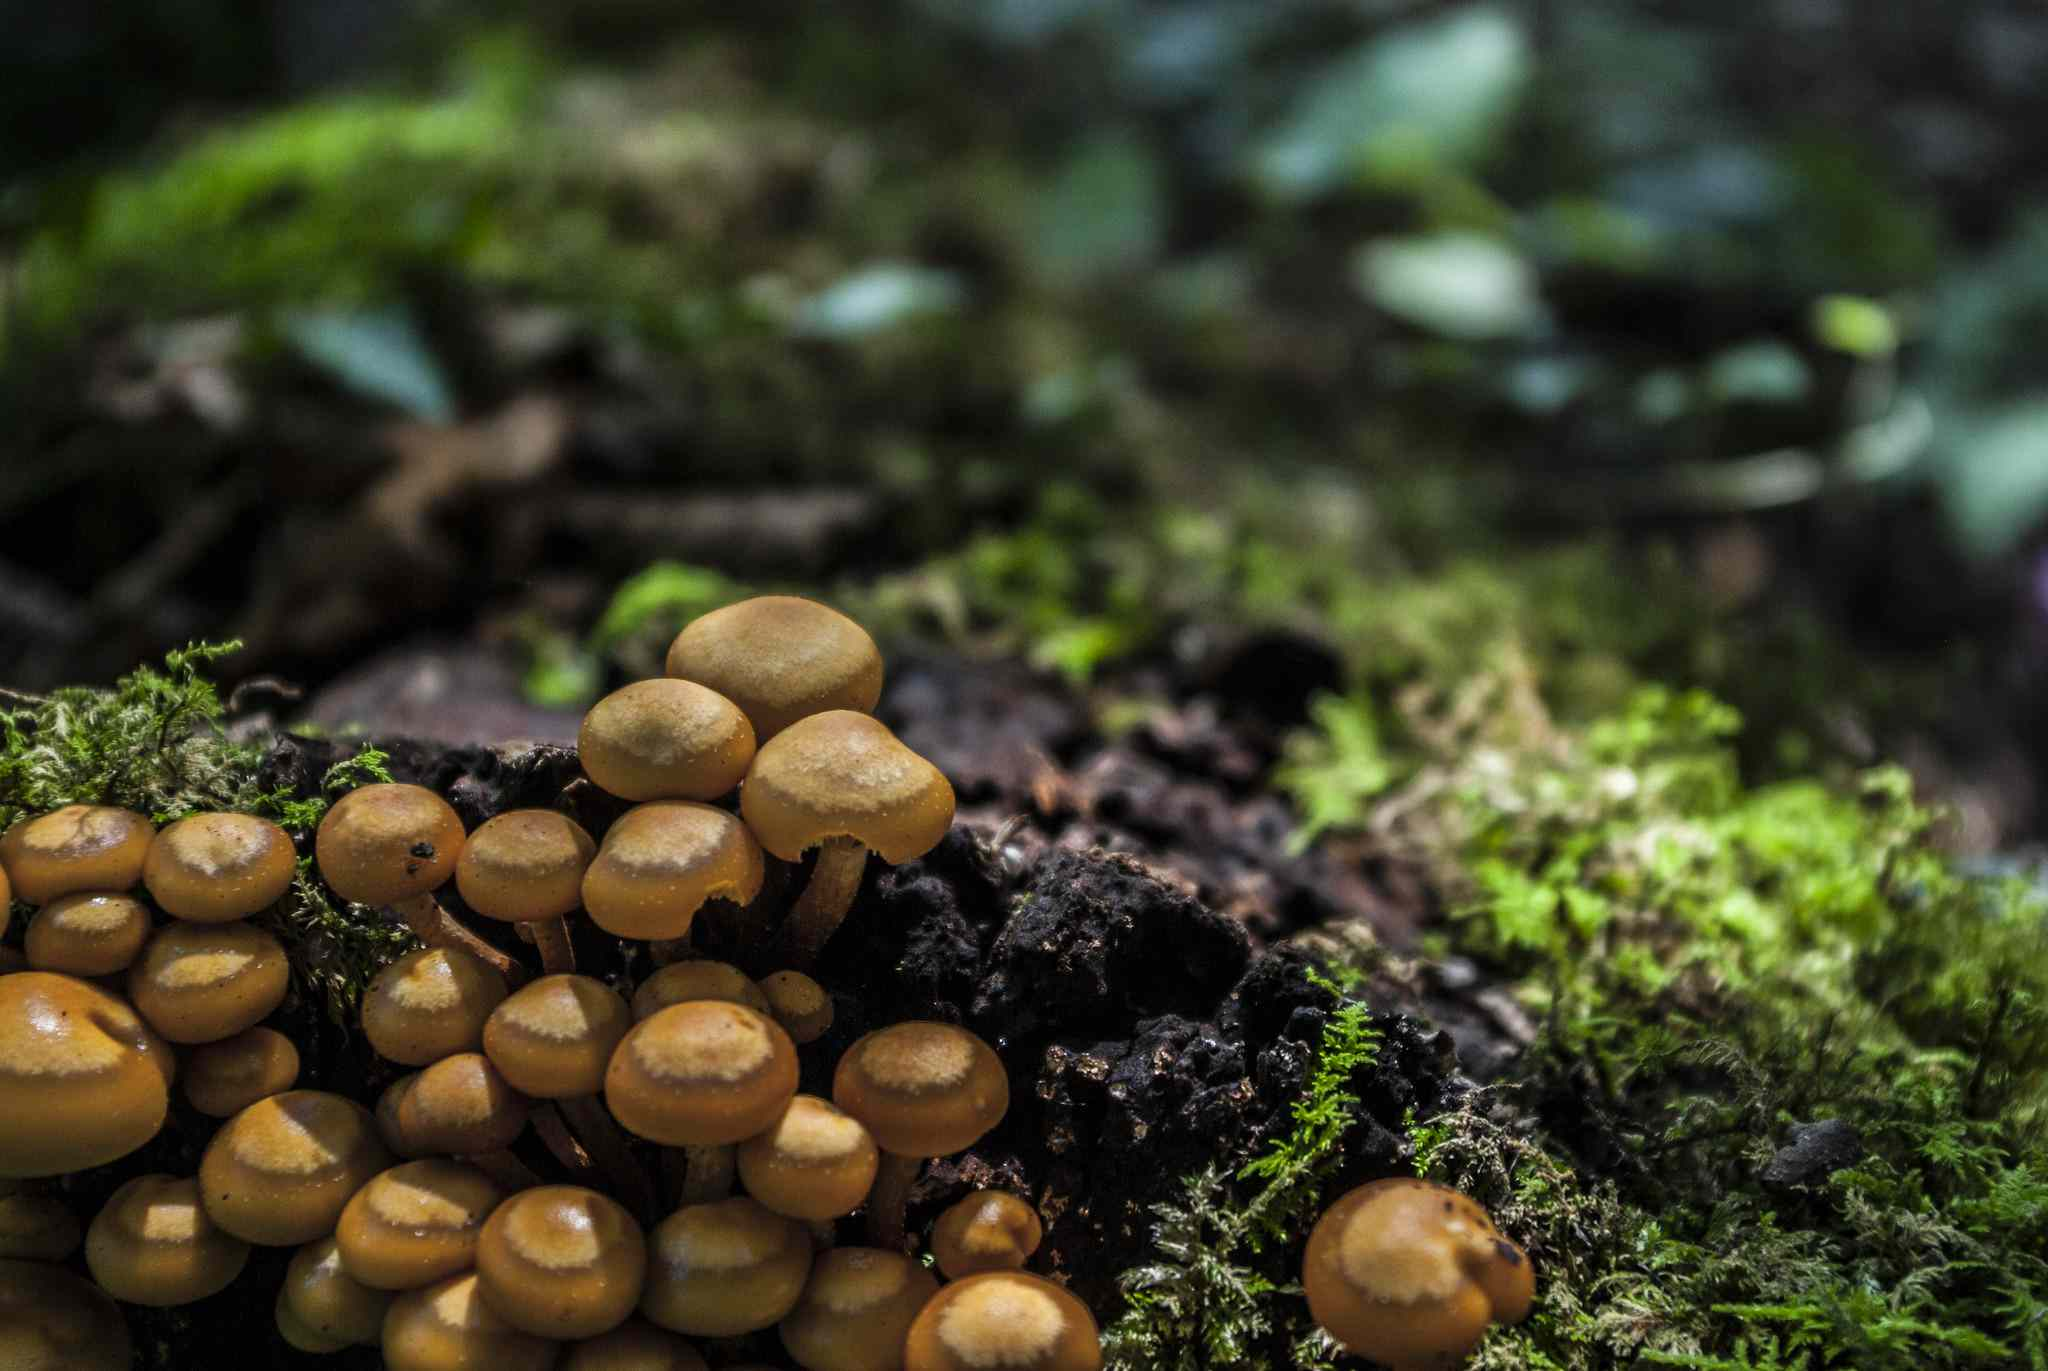 Cluster of Armillaria mellea growing on mossy forest floor